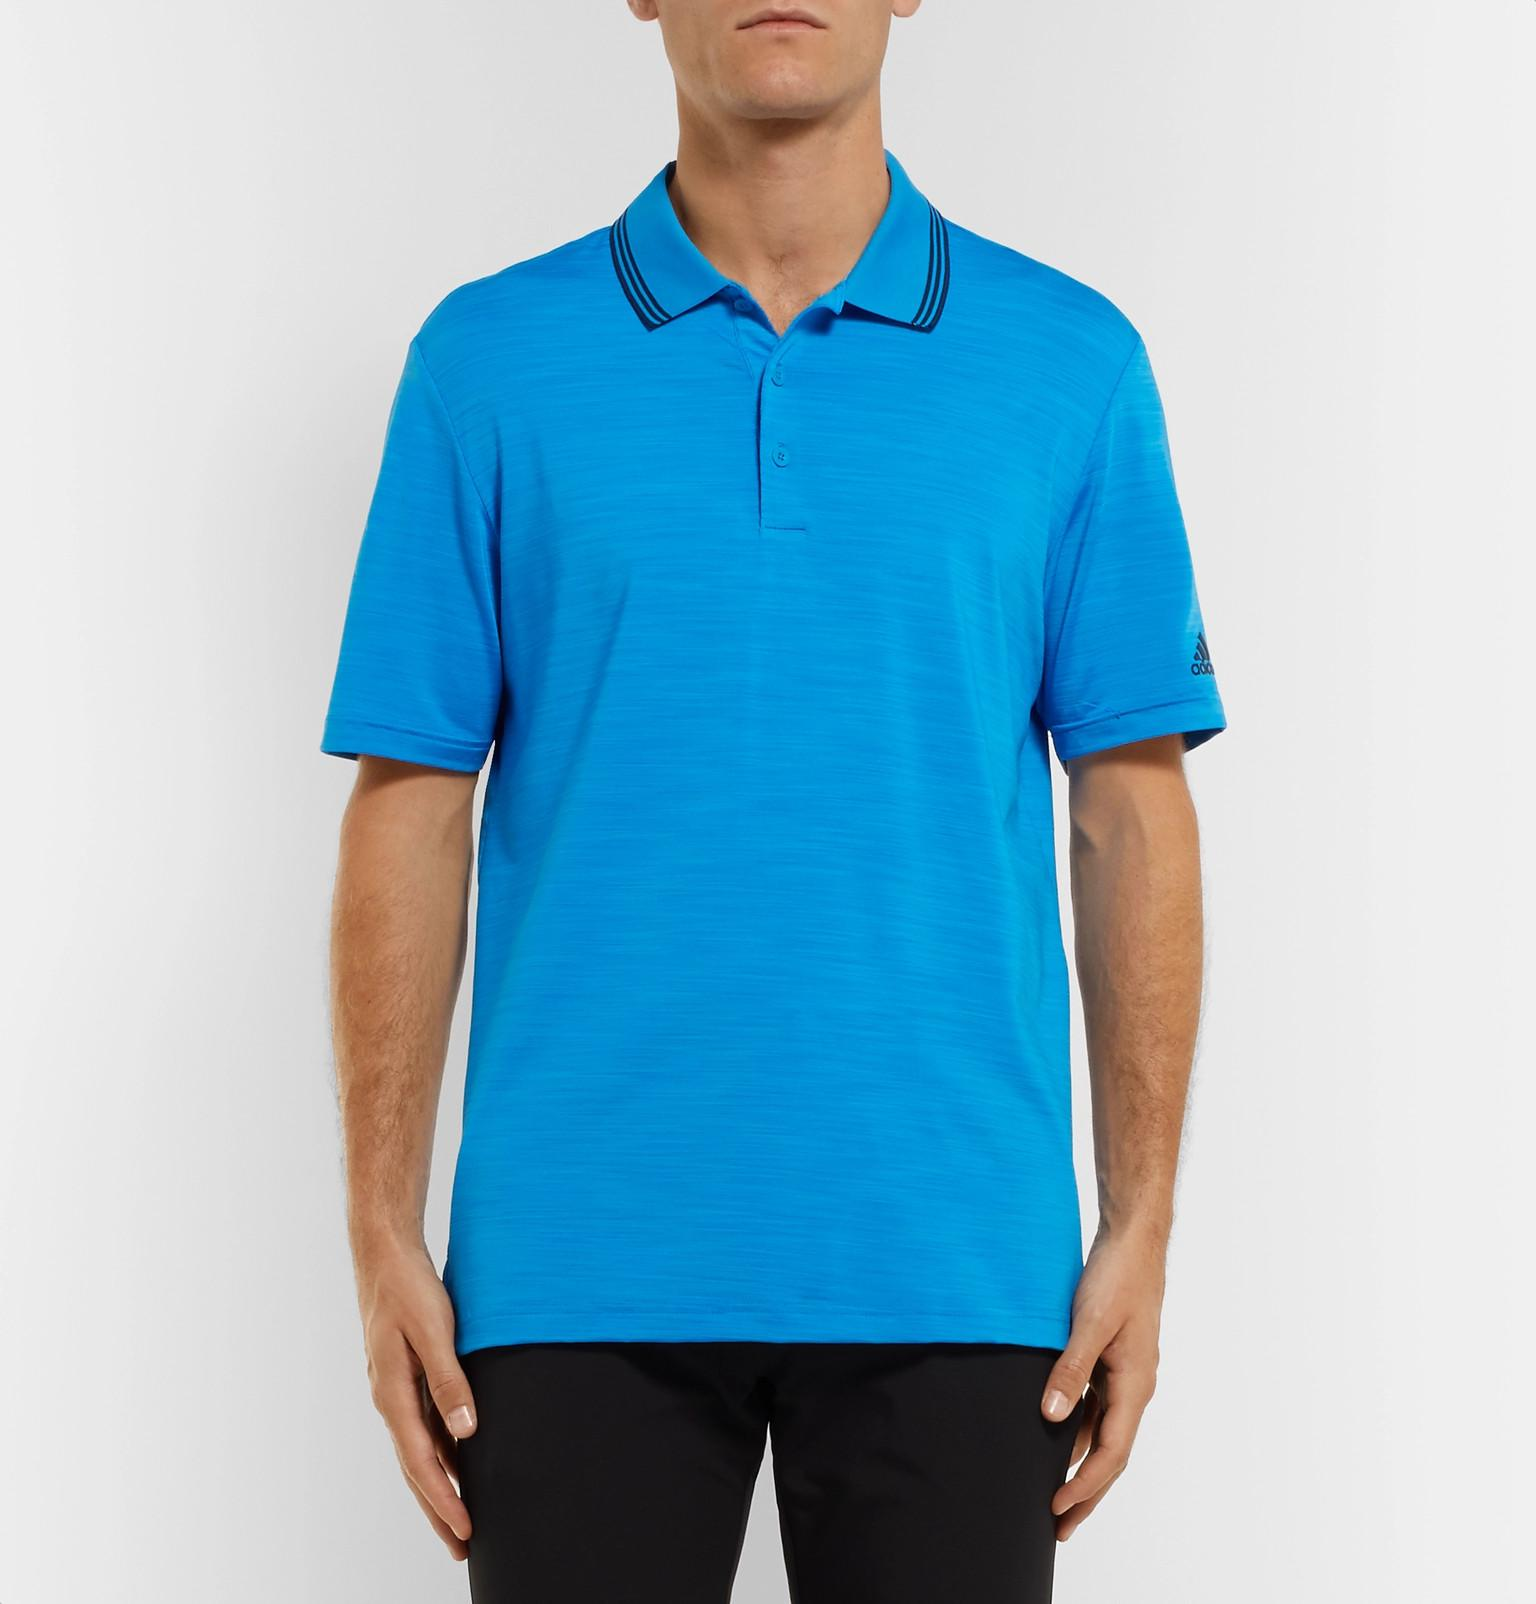 adidas Originals Ultimate 365 Contrast-tipped Mélange Stretch-jersey Polo Shirt in Bright Blue (Blue) for Men